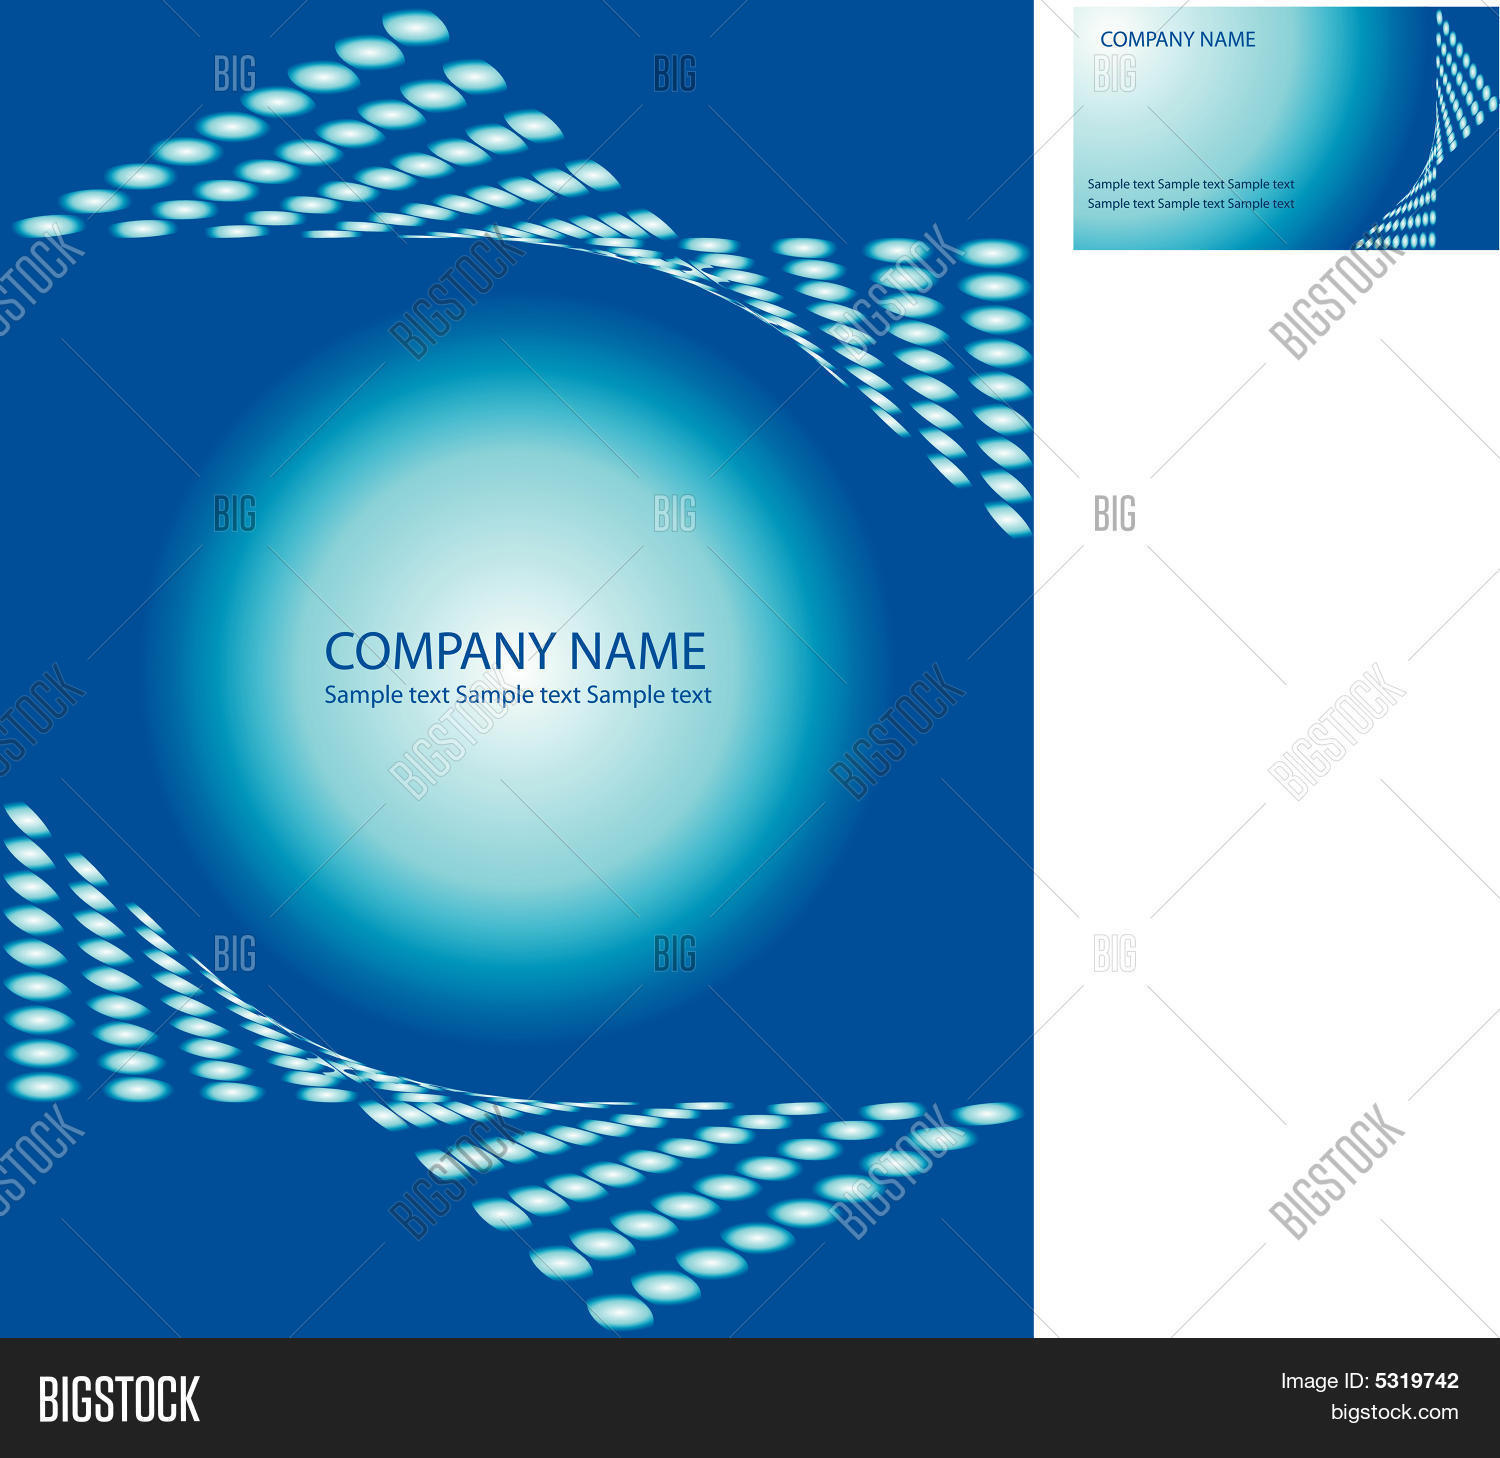 Business Book Cover Name ~ Abstract business book cover vector photo bigstock